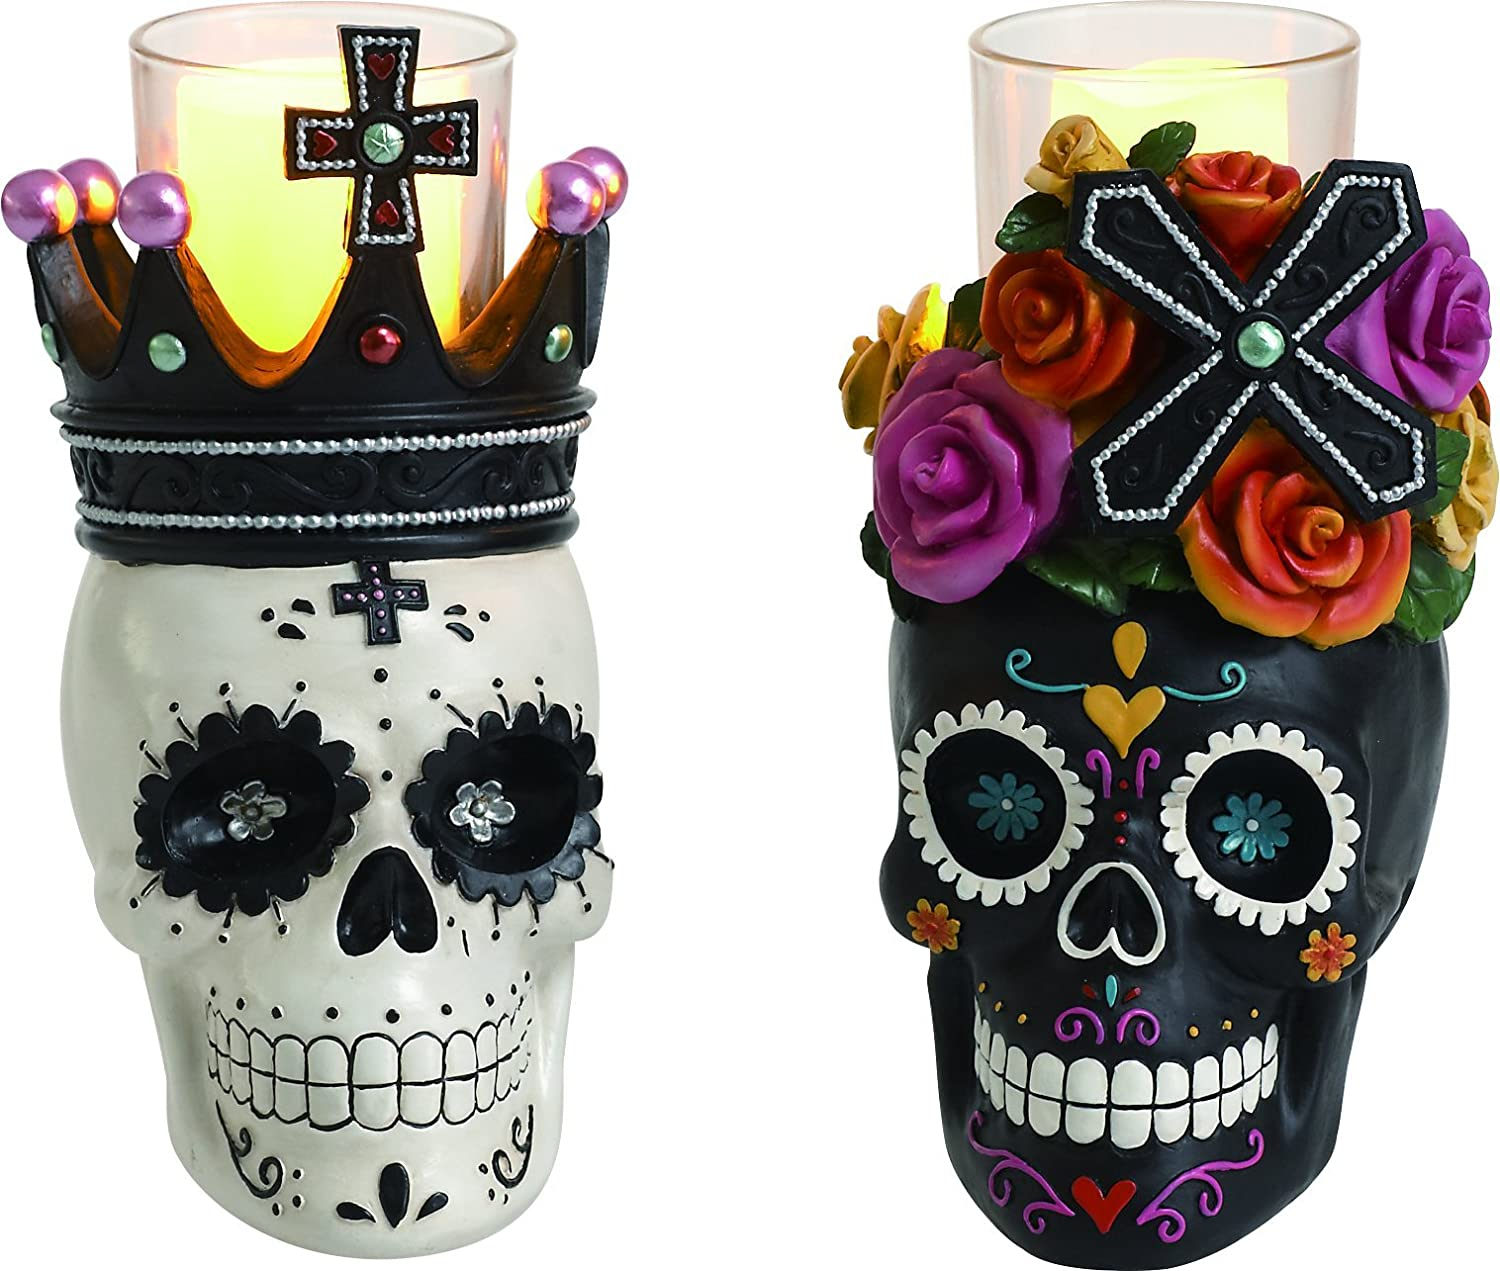 candle holders  my sugar skulls -  inches high by  inches x  inches each candleholder cast resinin brilliant colors and outstanding details day of the dead decor glasscandle